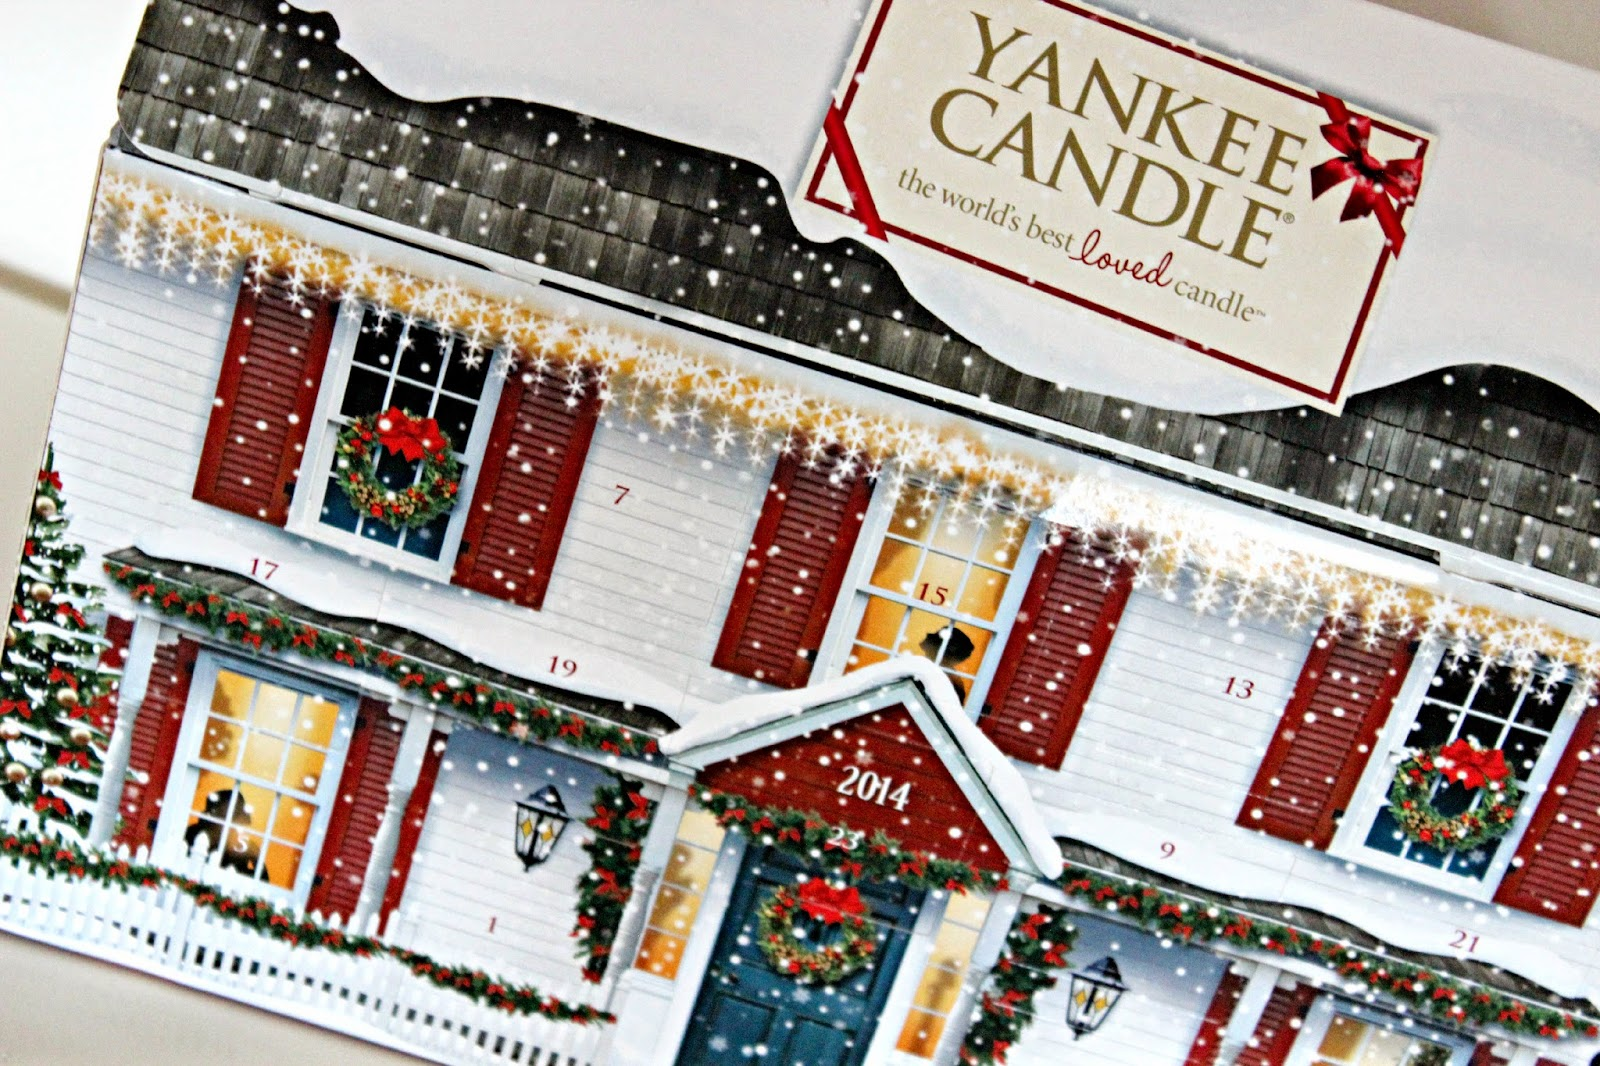 Yankee Candle House Advent Calendar 2014 Shallowwonderland